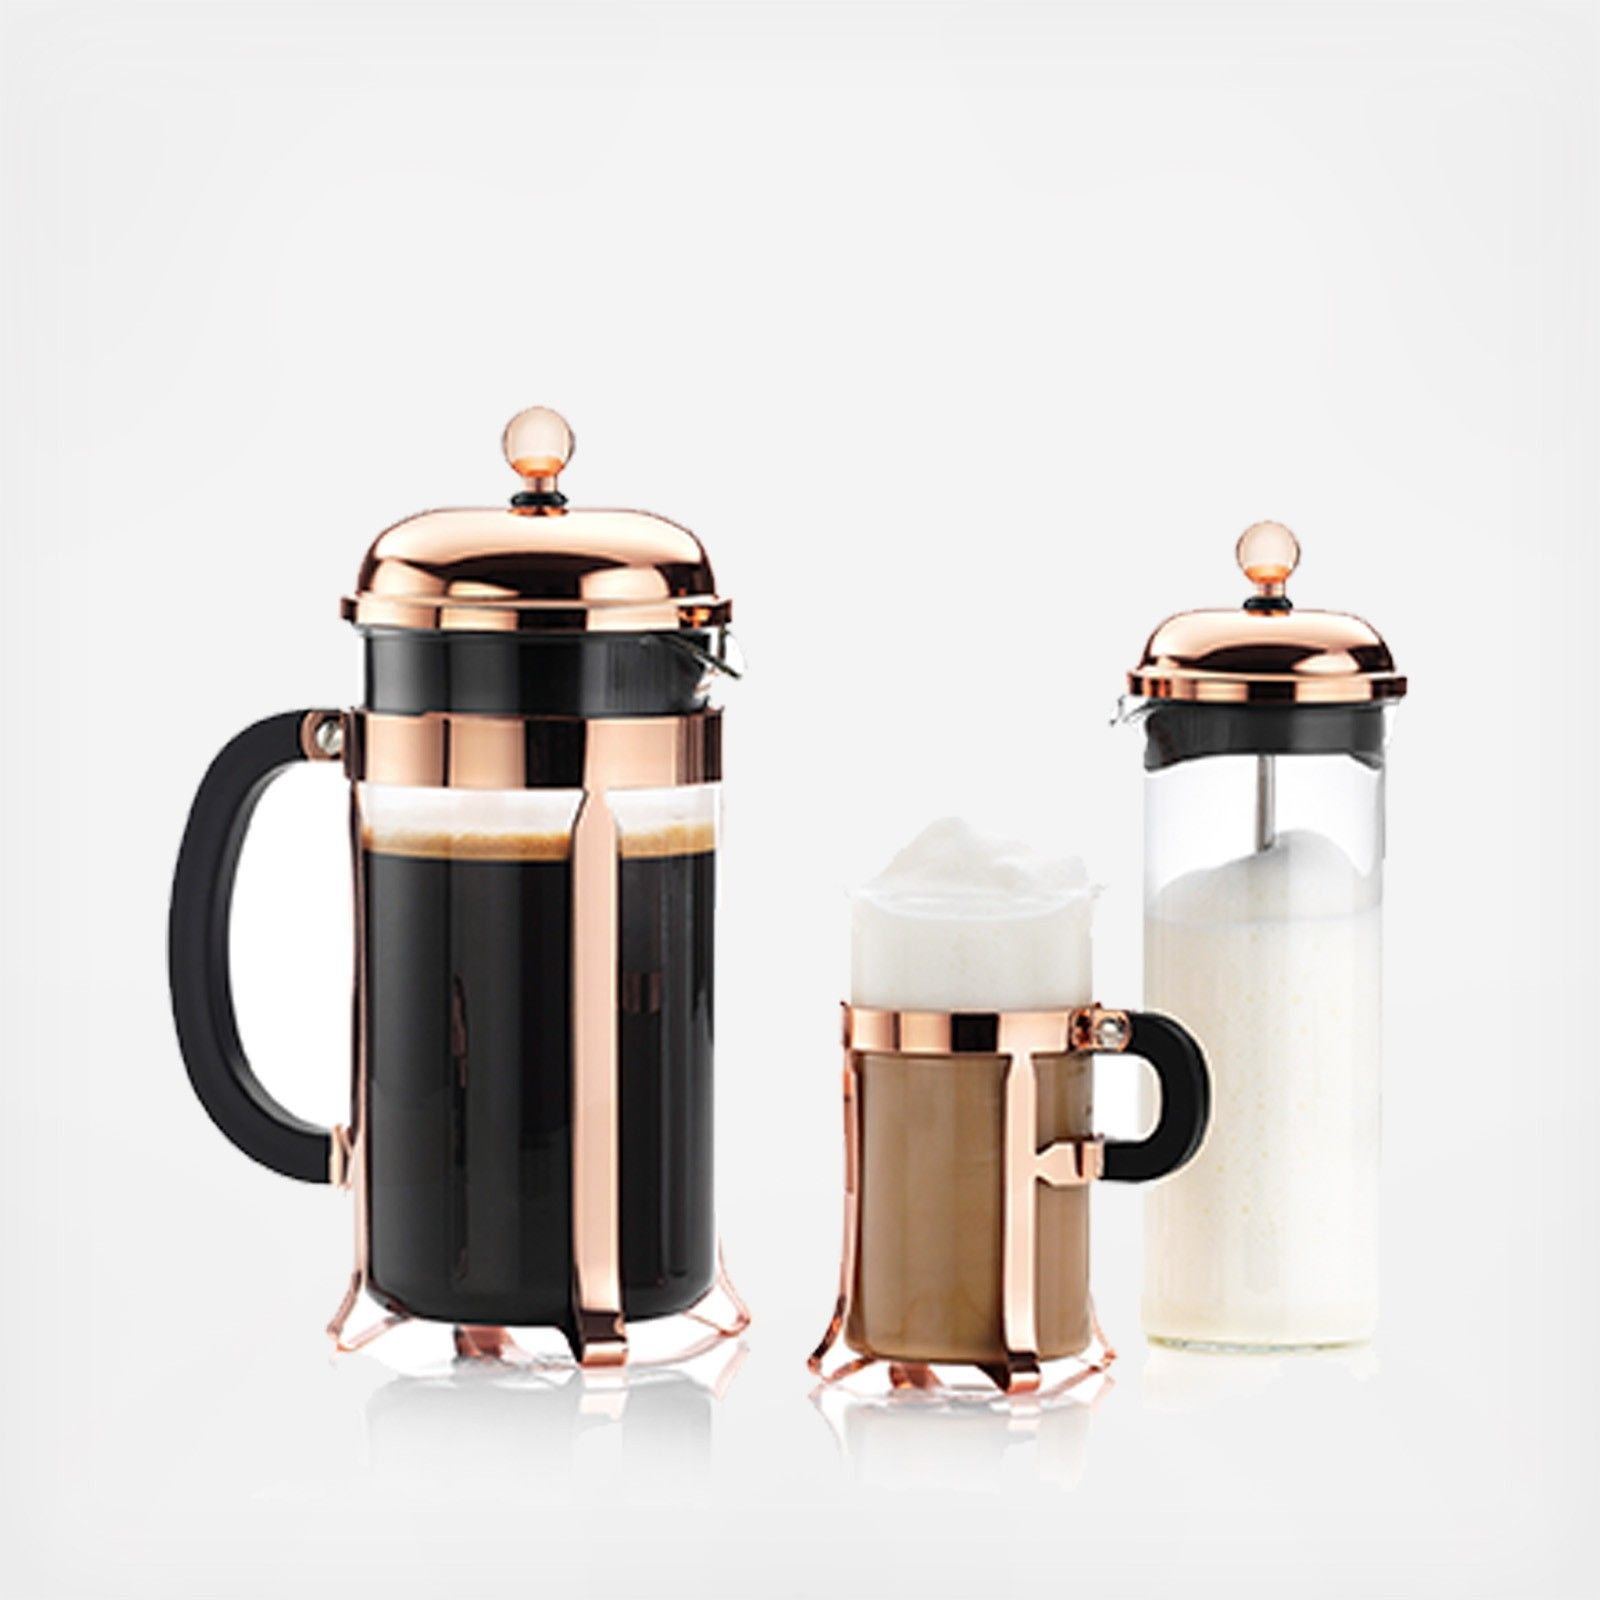 Chambord is a true original with this classic French press